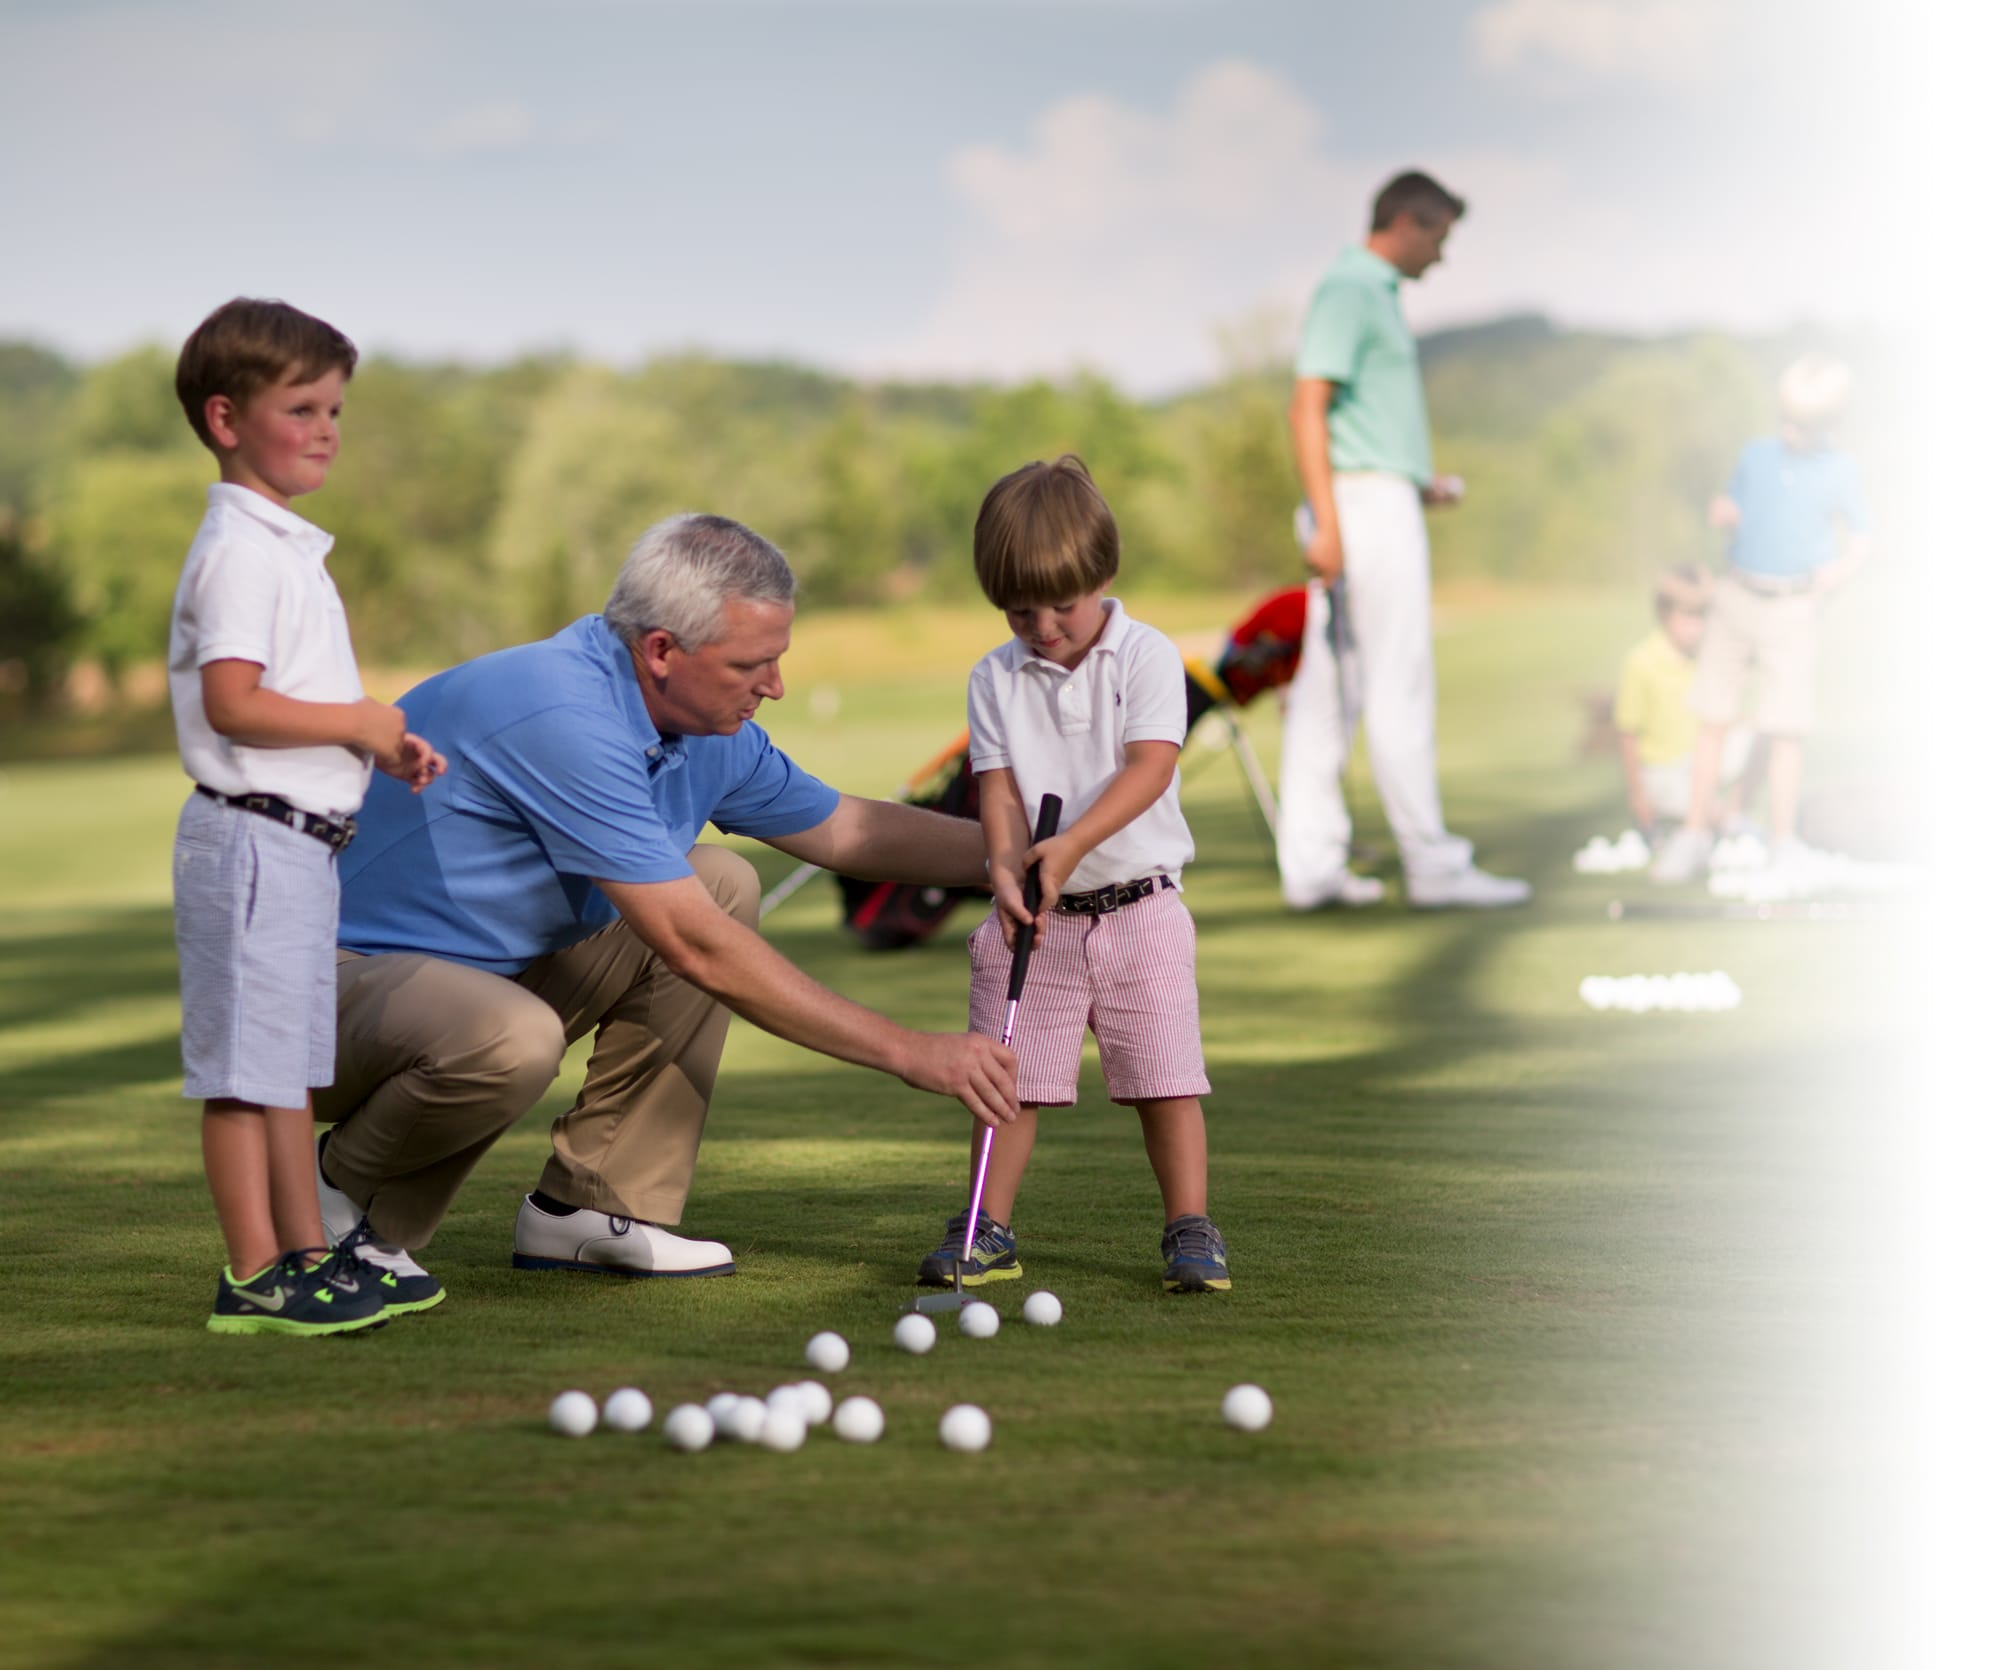 Children learning the basics of golfing